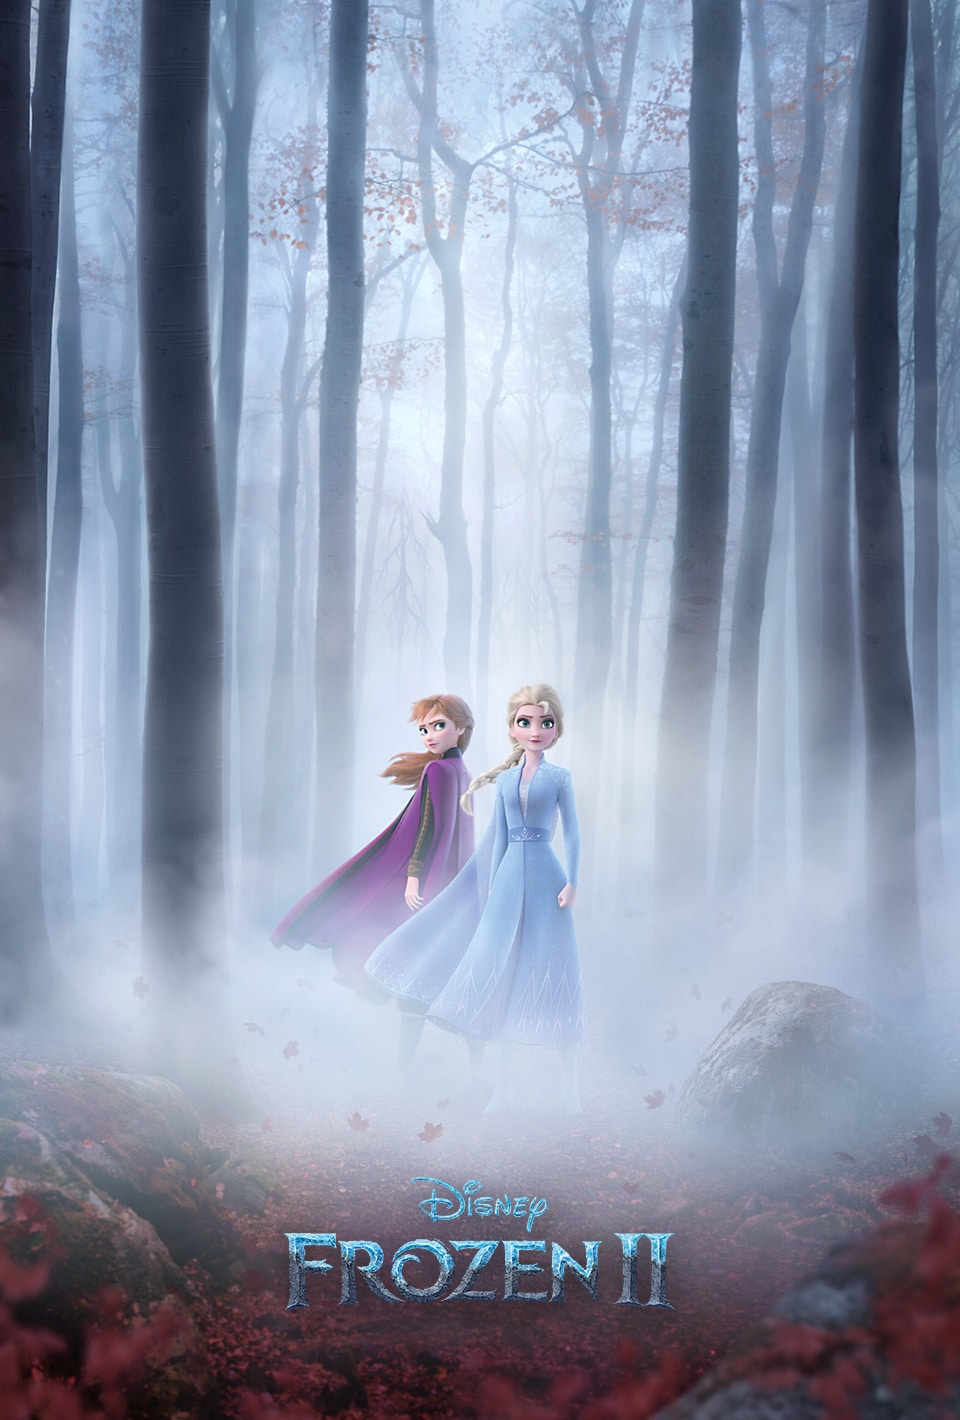 Frozen 2 | Disney Movies Australia & New Zealand